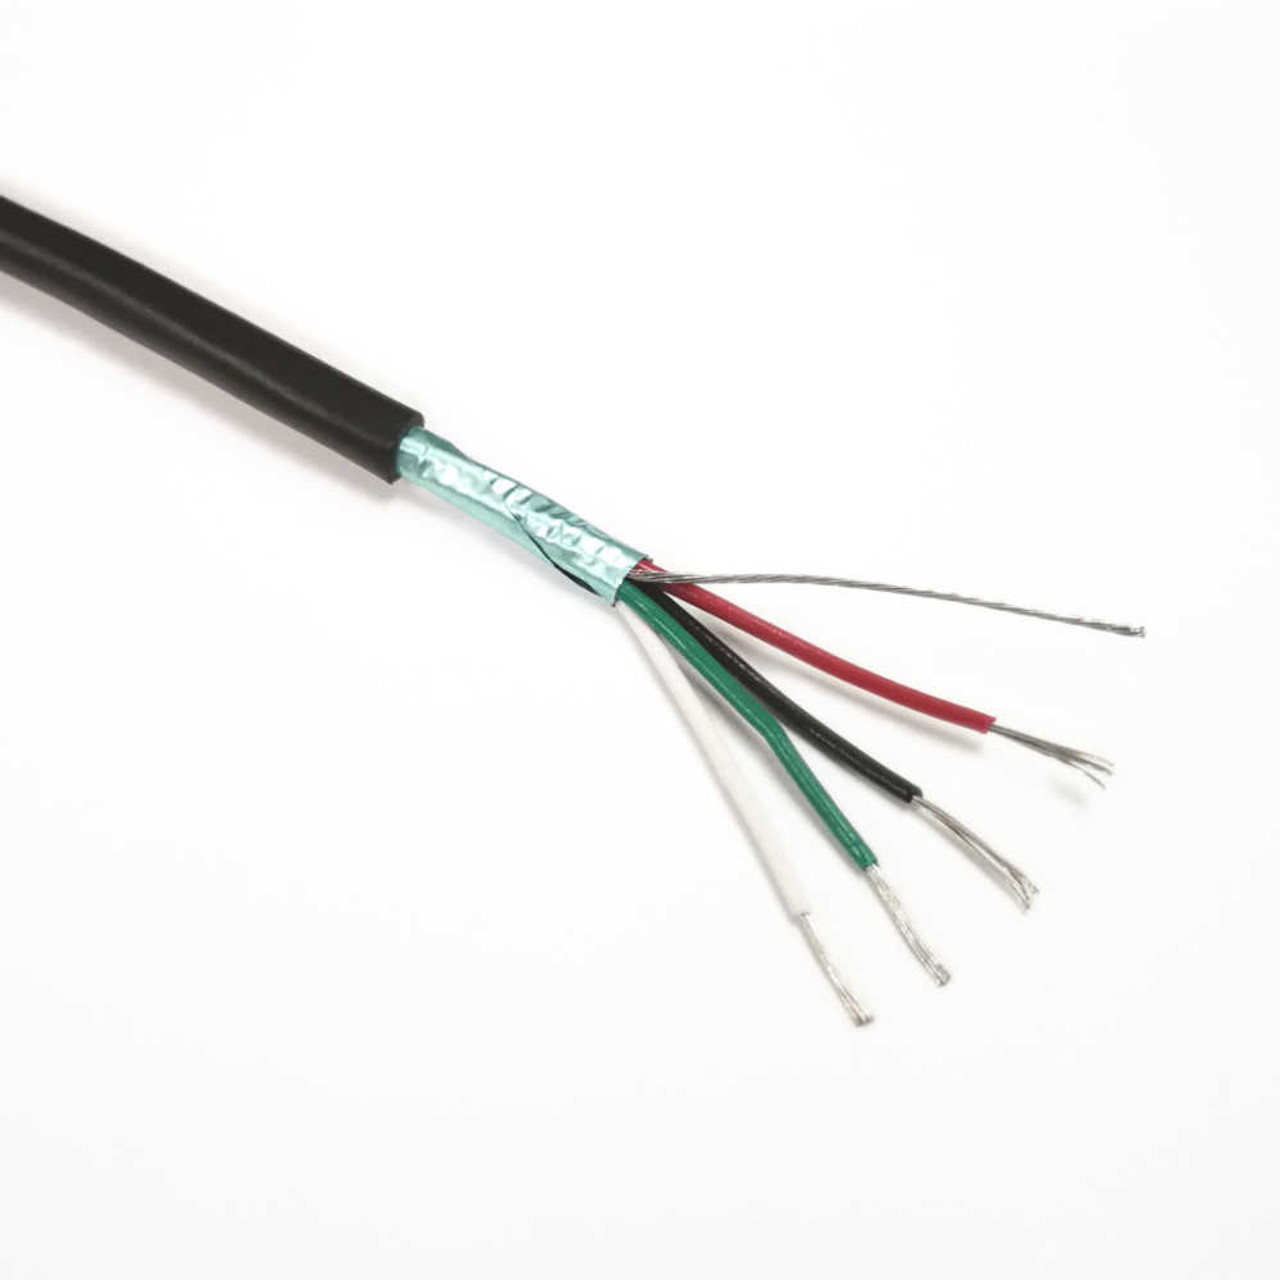 4-Conductor Shielded Wire for Pickups - By Foot